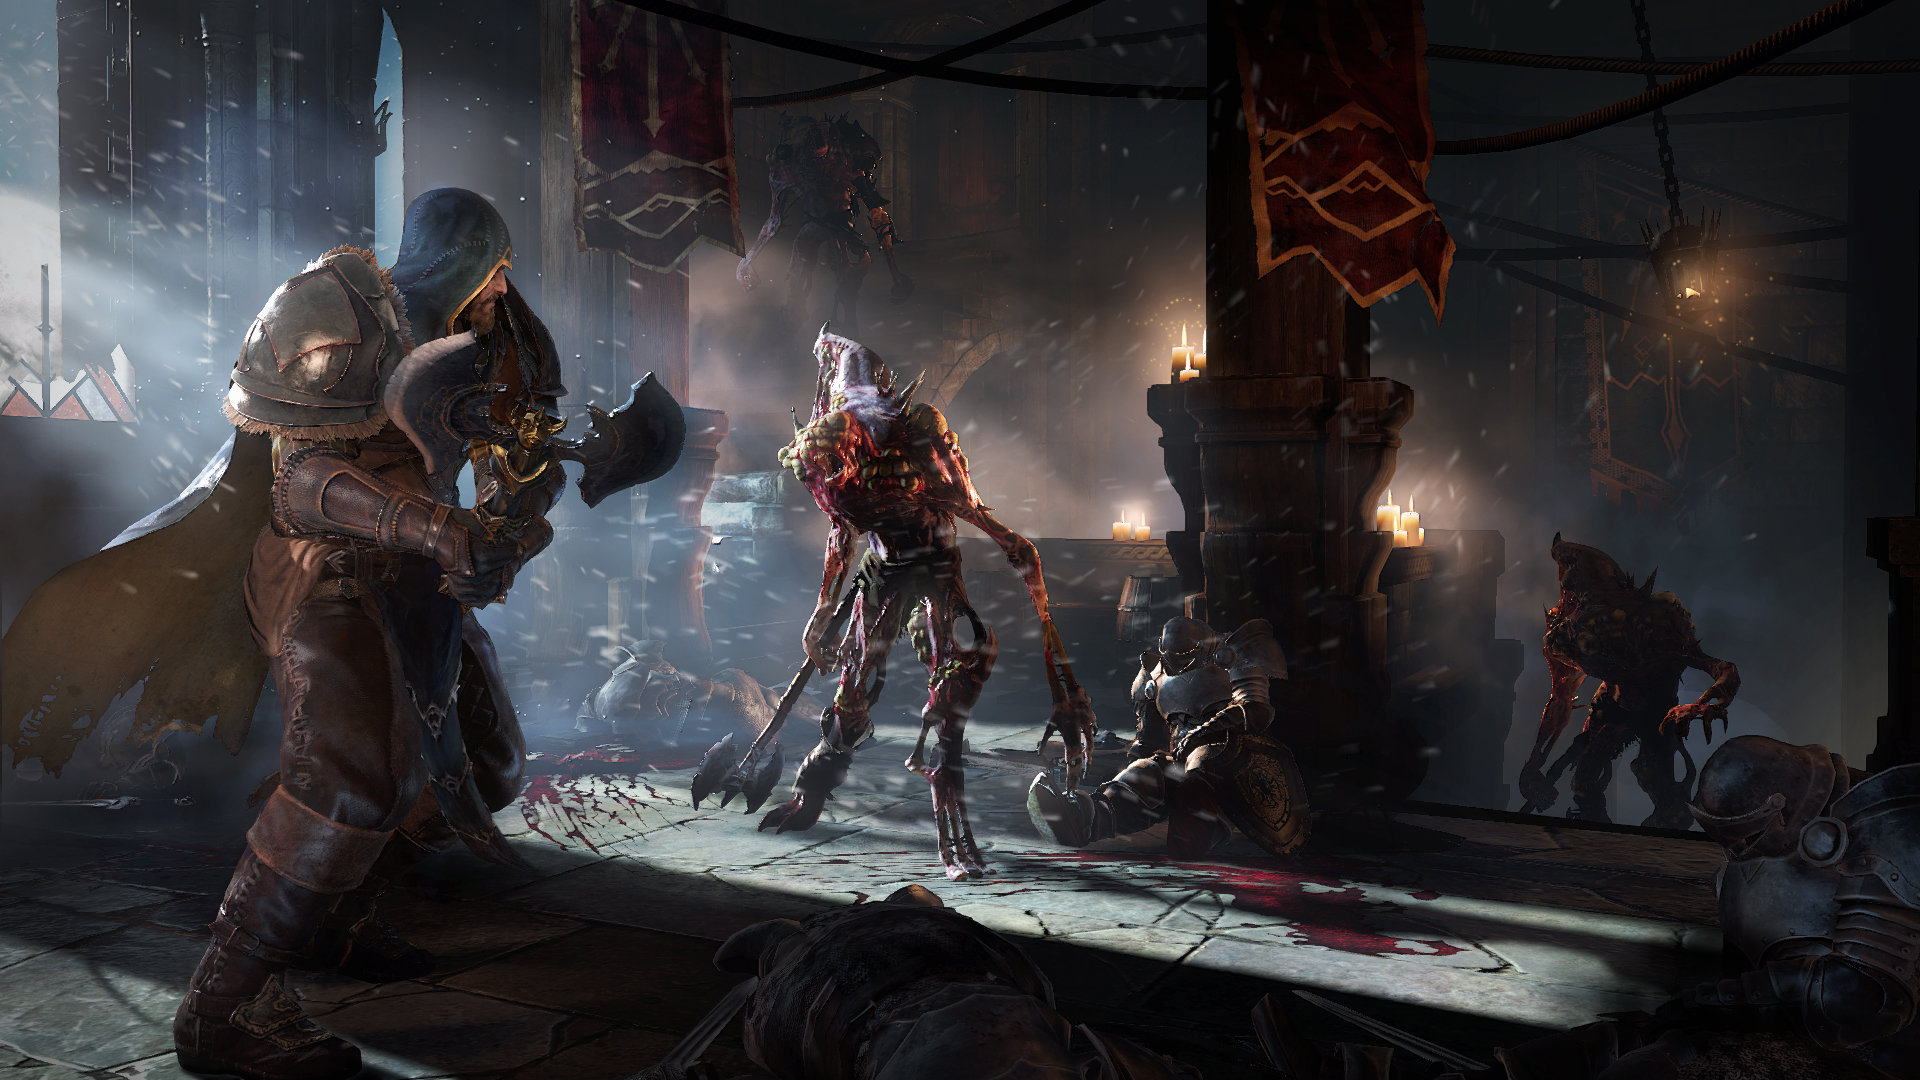 Free Download Lords Of The Fallen Wallpaper Id 340248 1080p For Pc